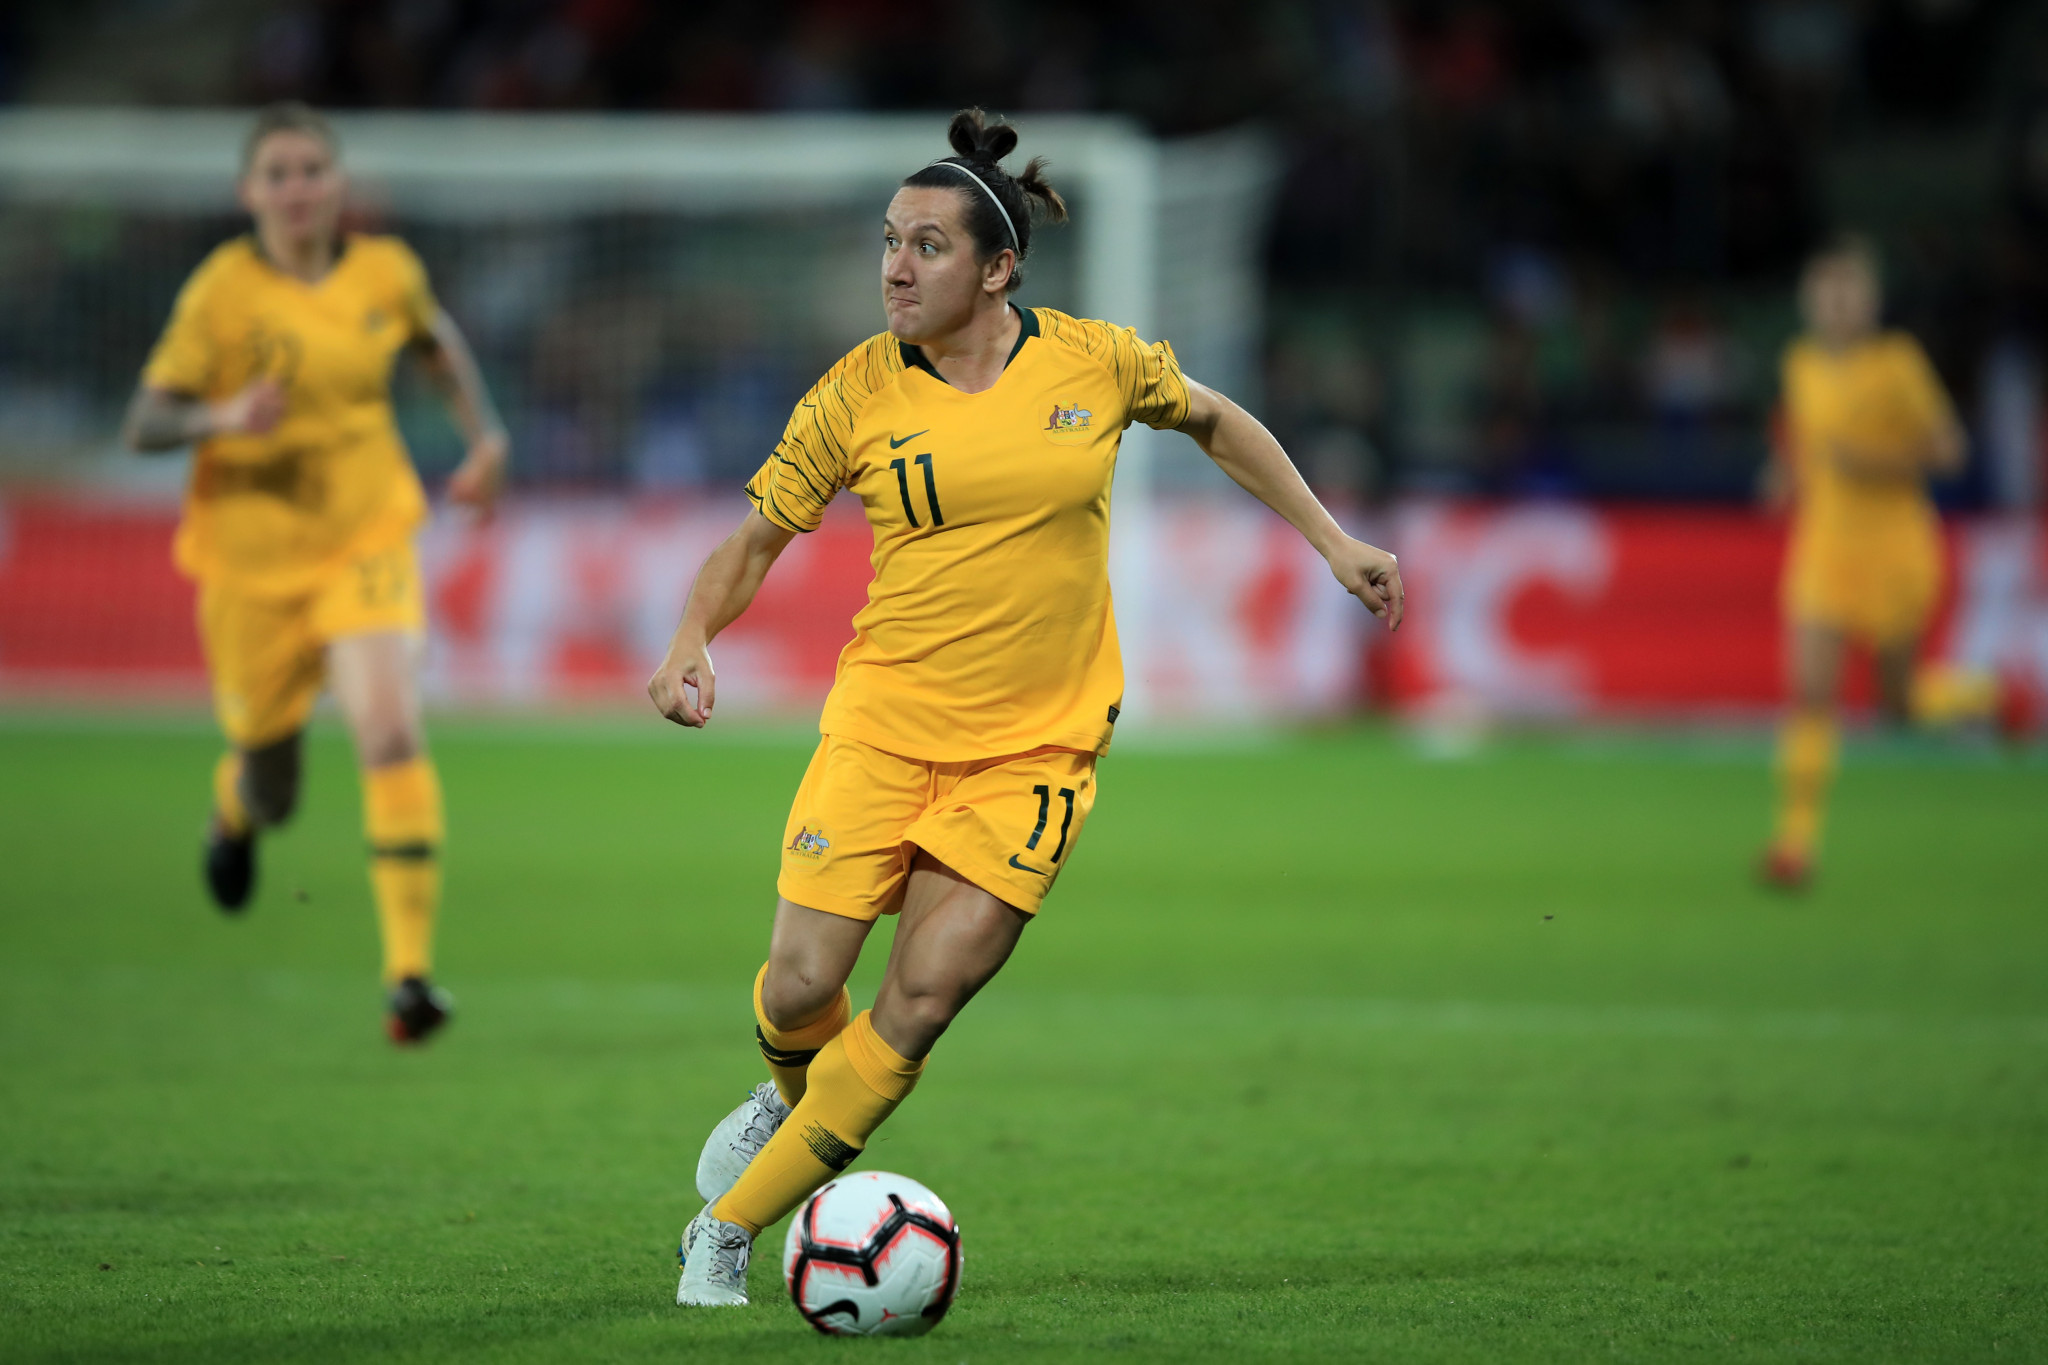 Football Australia forms independent complaints procedure after De Vanna's sexual abuse allegations